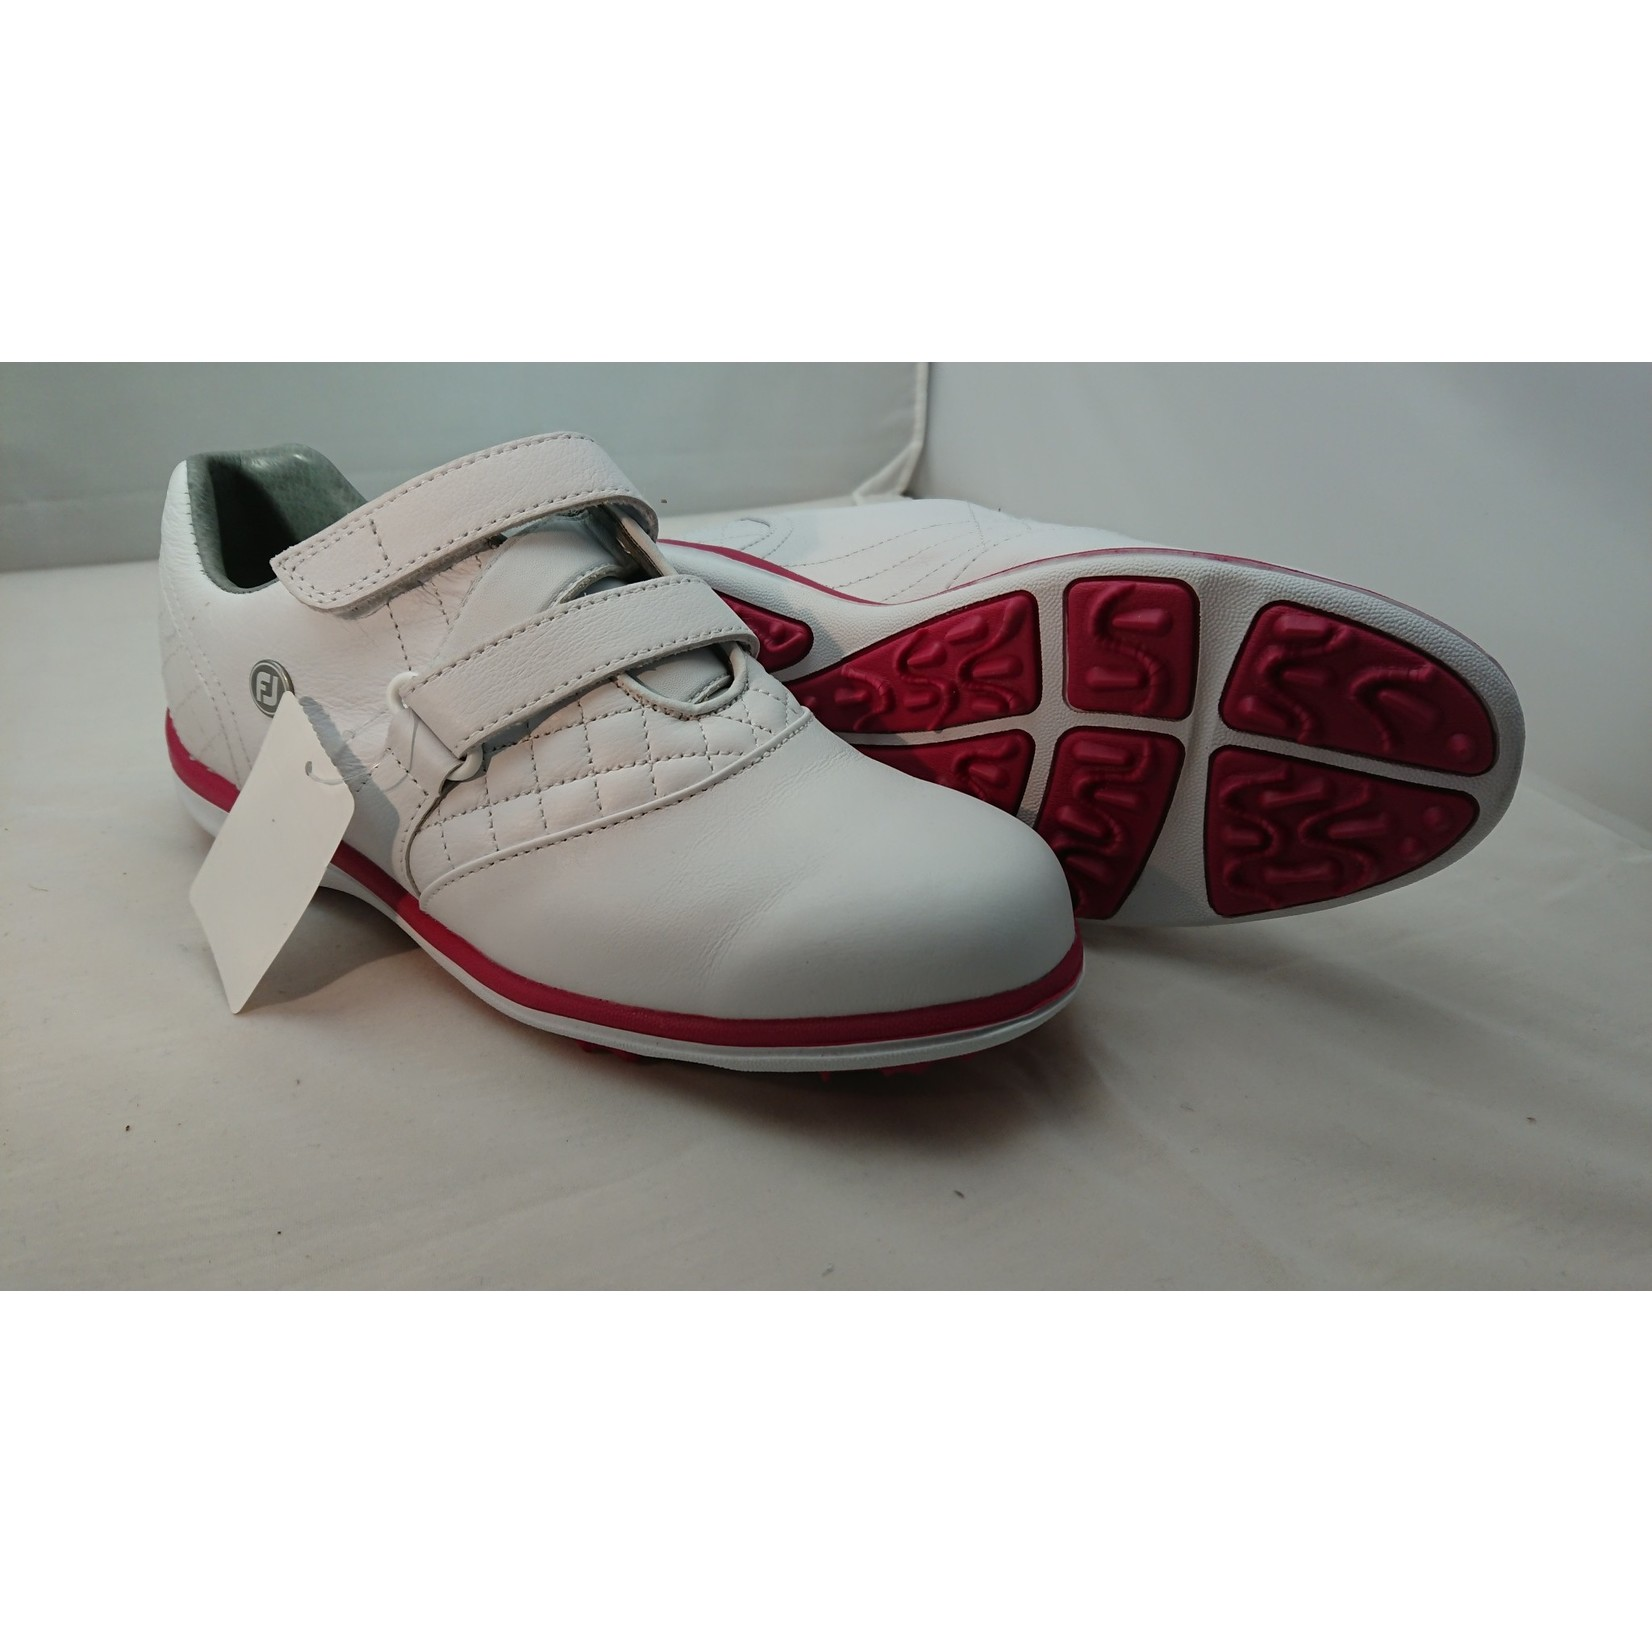 Footjoy Footjoy Casual collection Wit 36.5